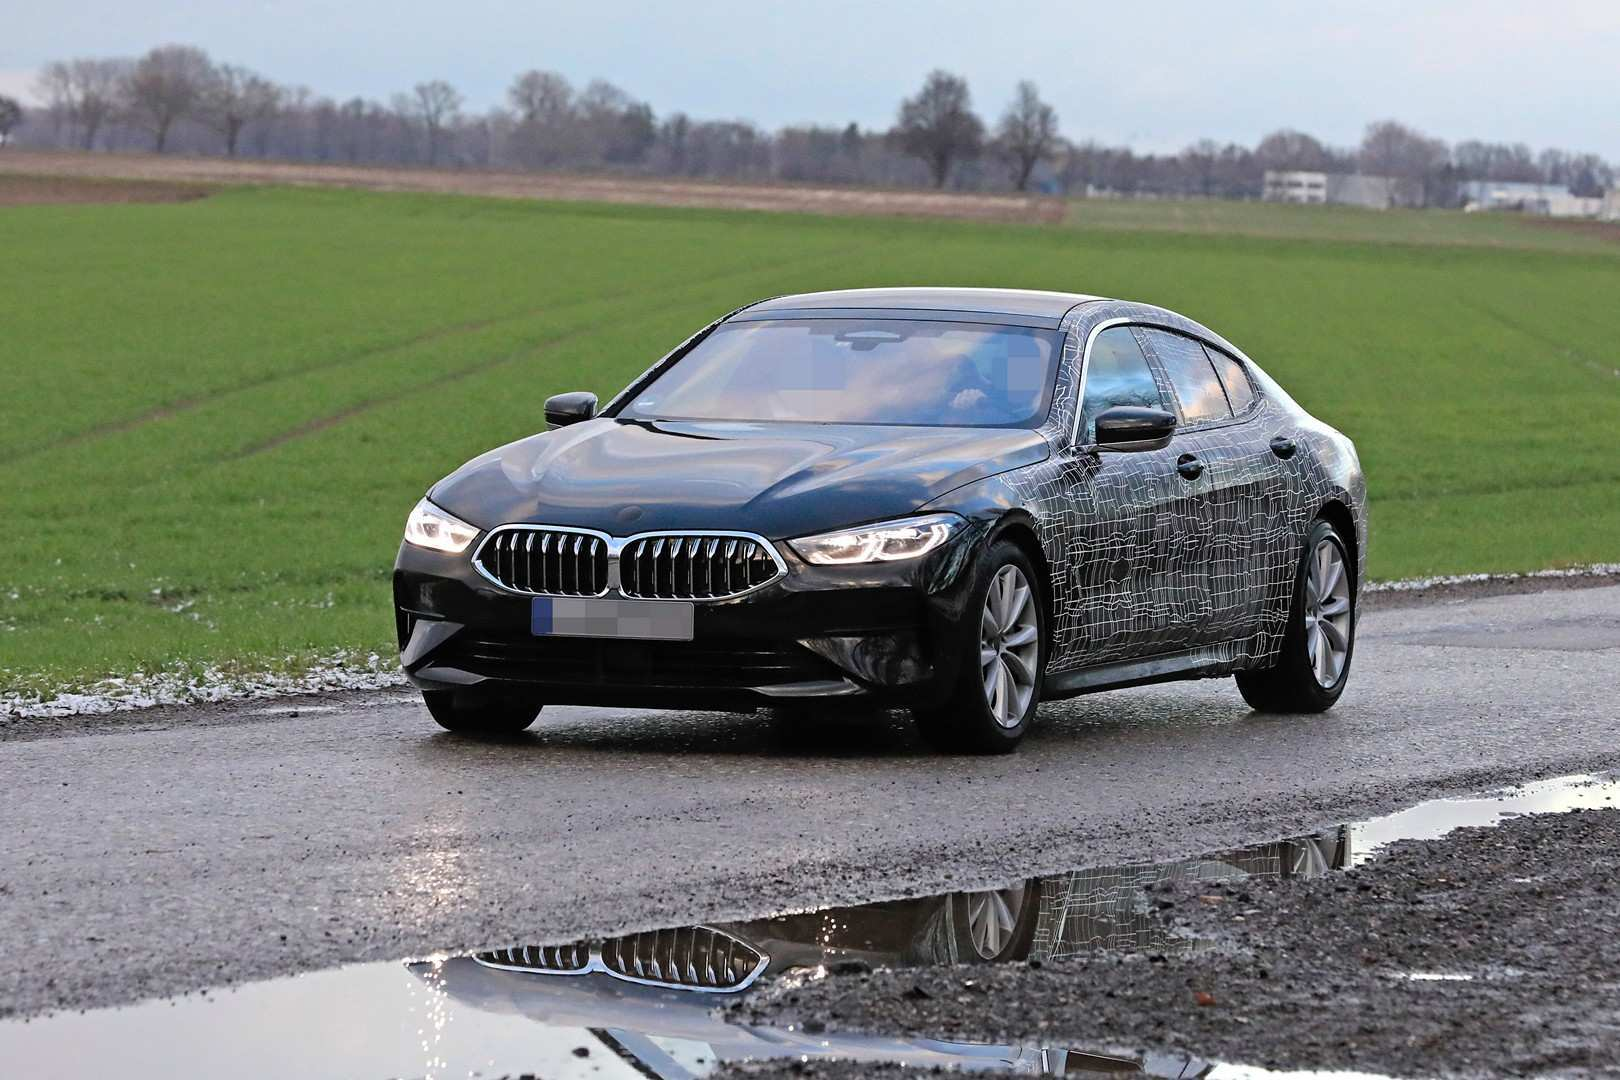 96 Gallery of BMW Coupe 2020 Price and Review by BMW Coupe 2020